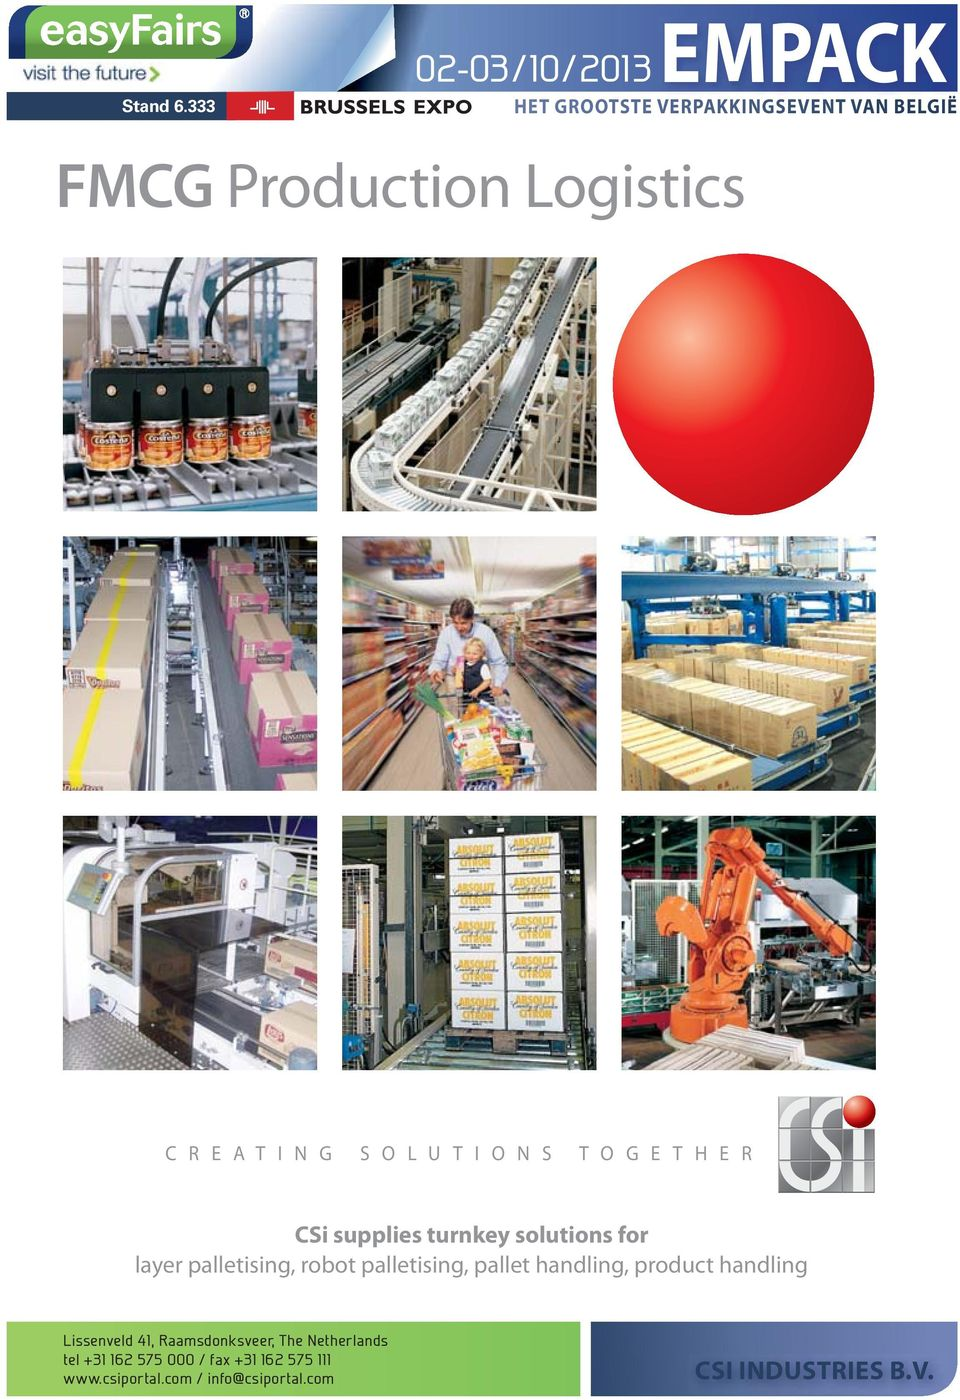 I N G S O L U T I O N S T O G E T H E R CSi supplies turnkey solutions for layer palletising, robot